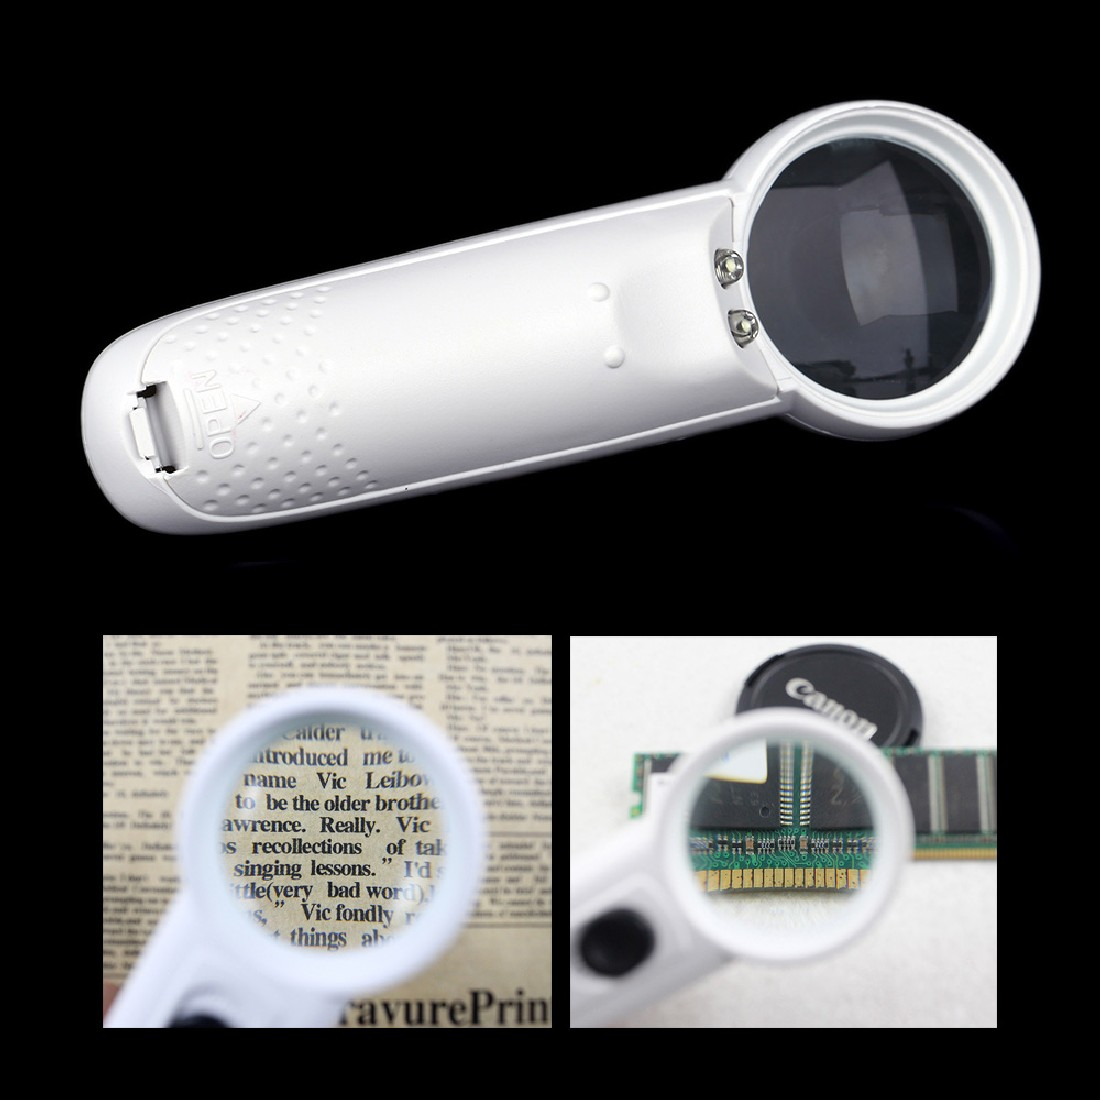 New Arrival Professional 37mm Diameter 15X Magnifier Portable Pocket Handheld Glass Loupe Magnifying Tool With 2 LED Light Lamps